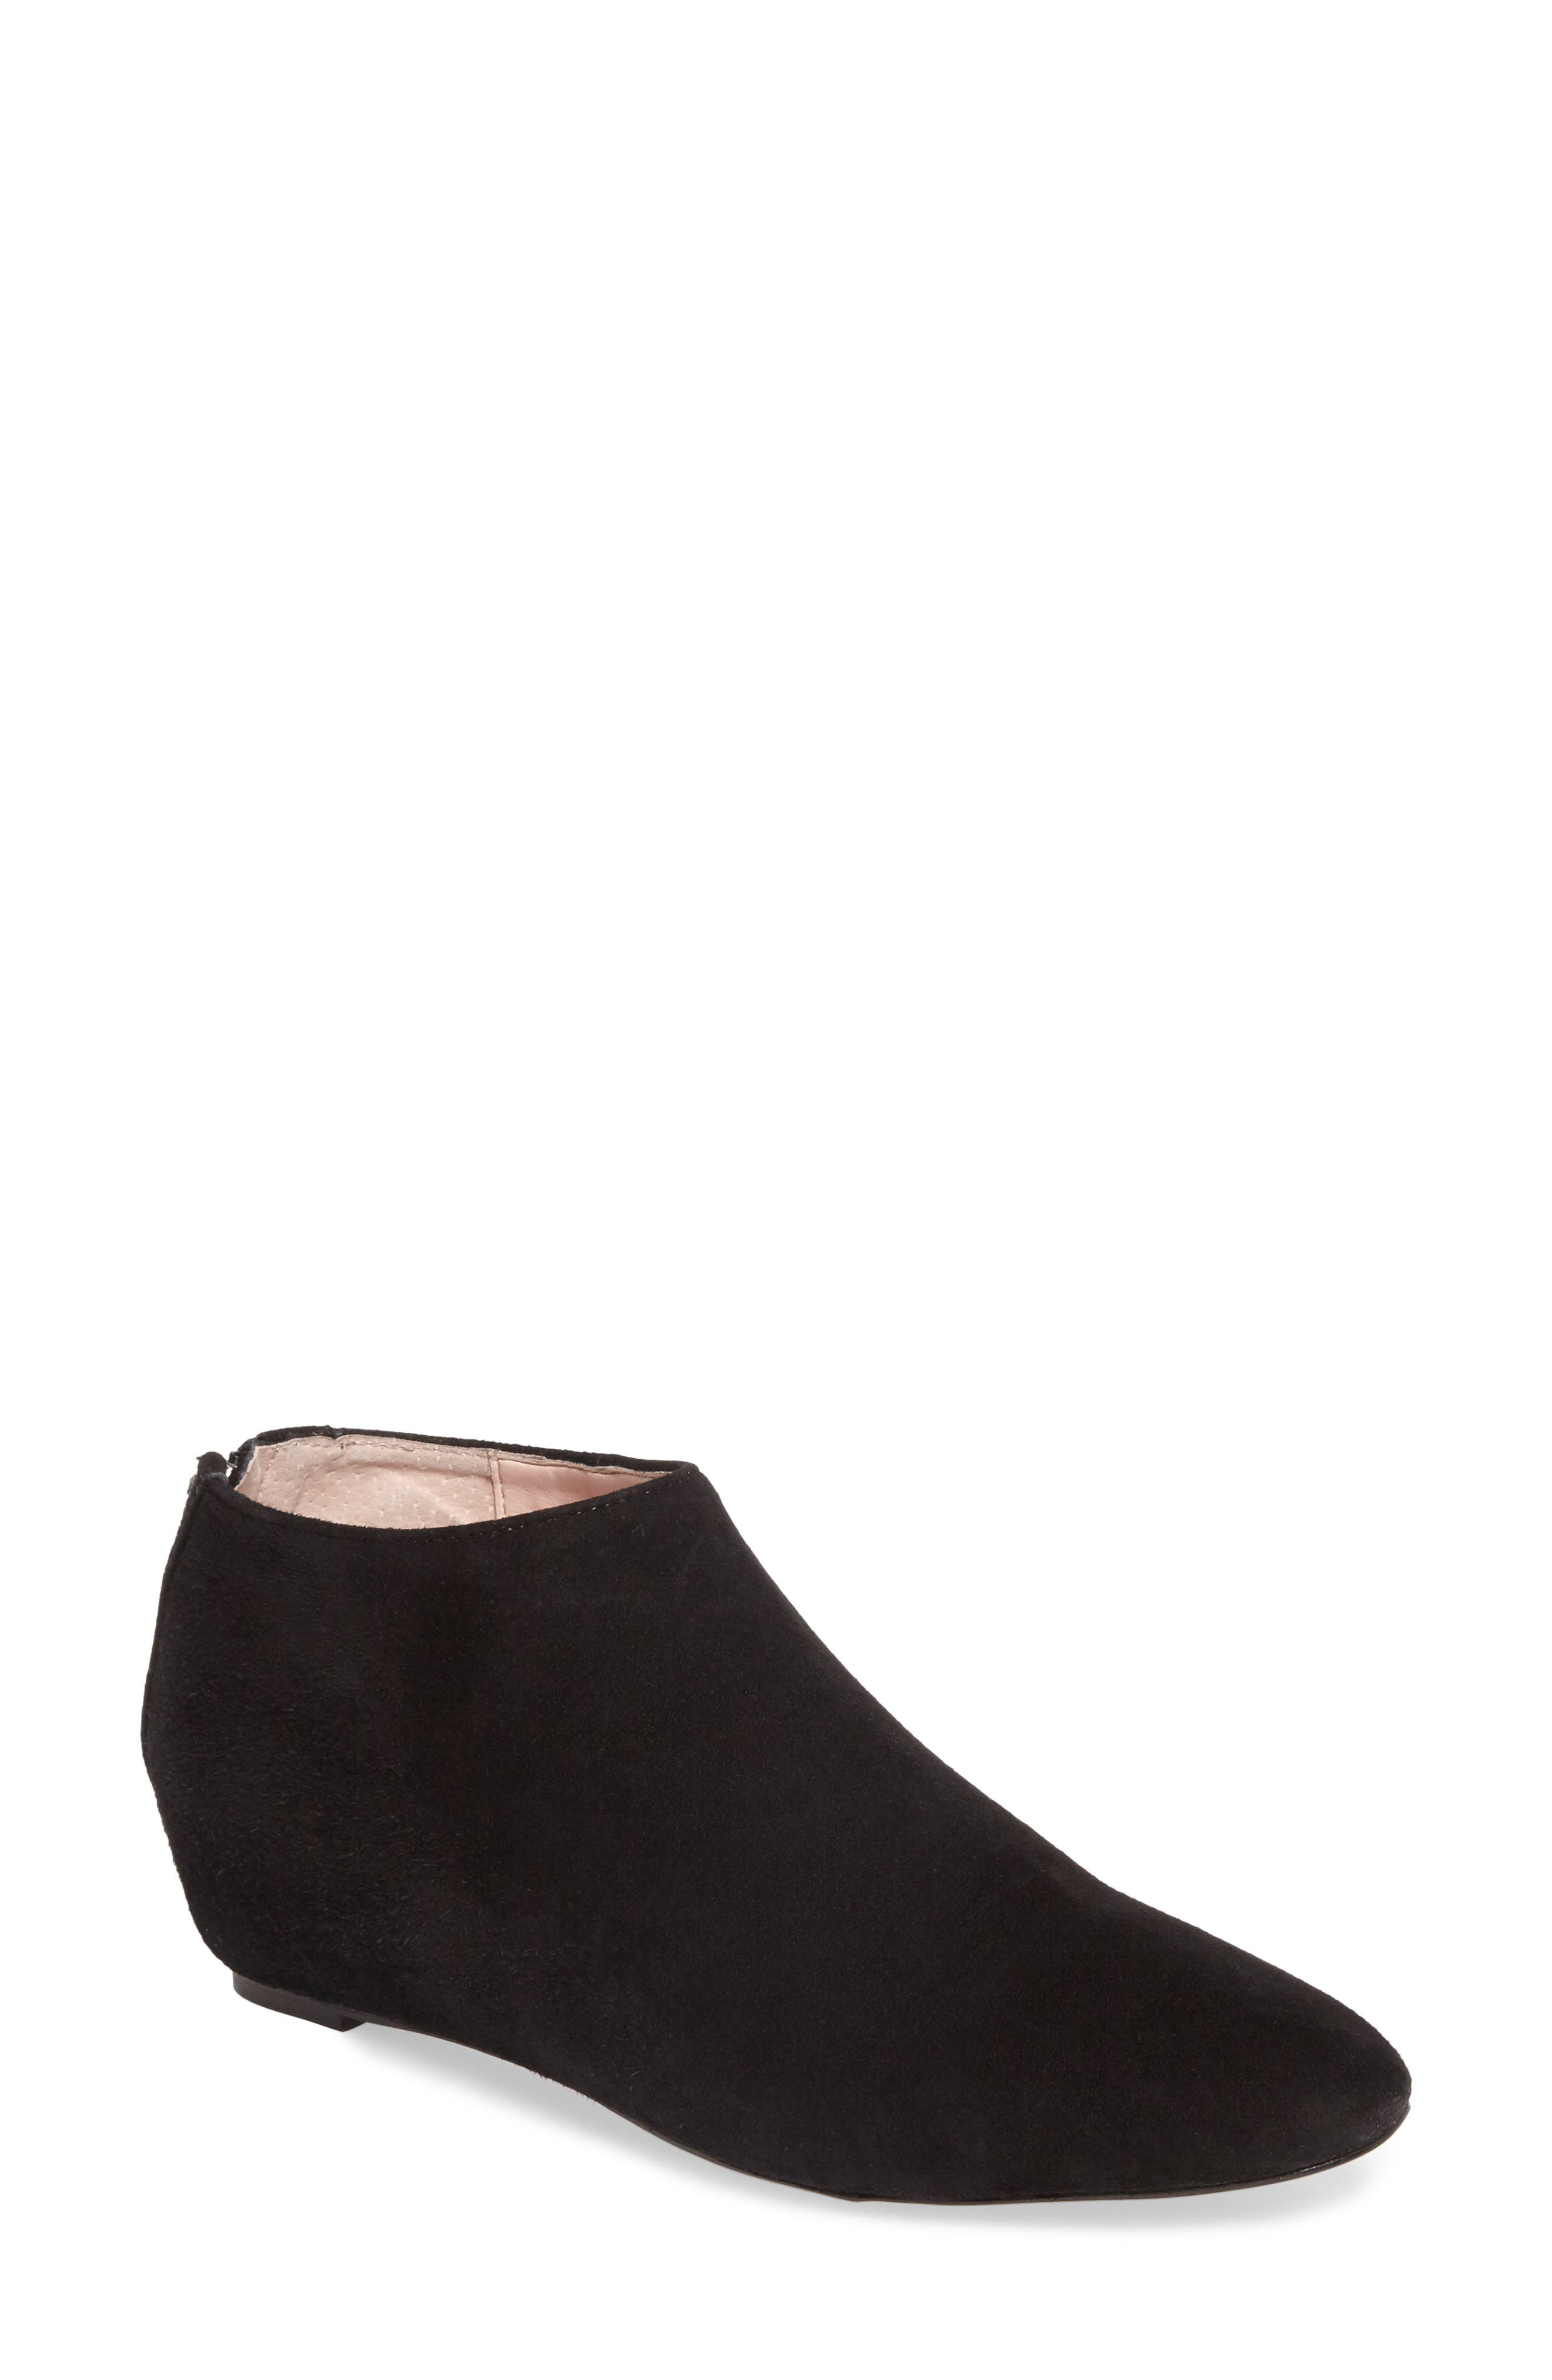 Aves Les Filles Beatrice Ankle Boot,                             Main thumbnail 1, color,